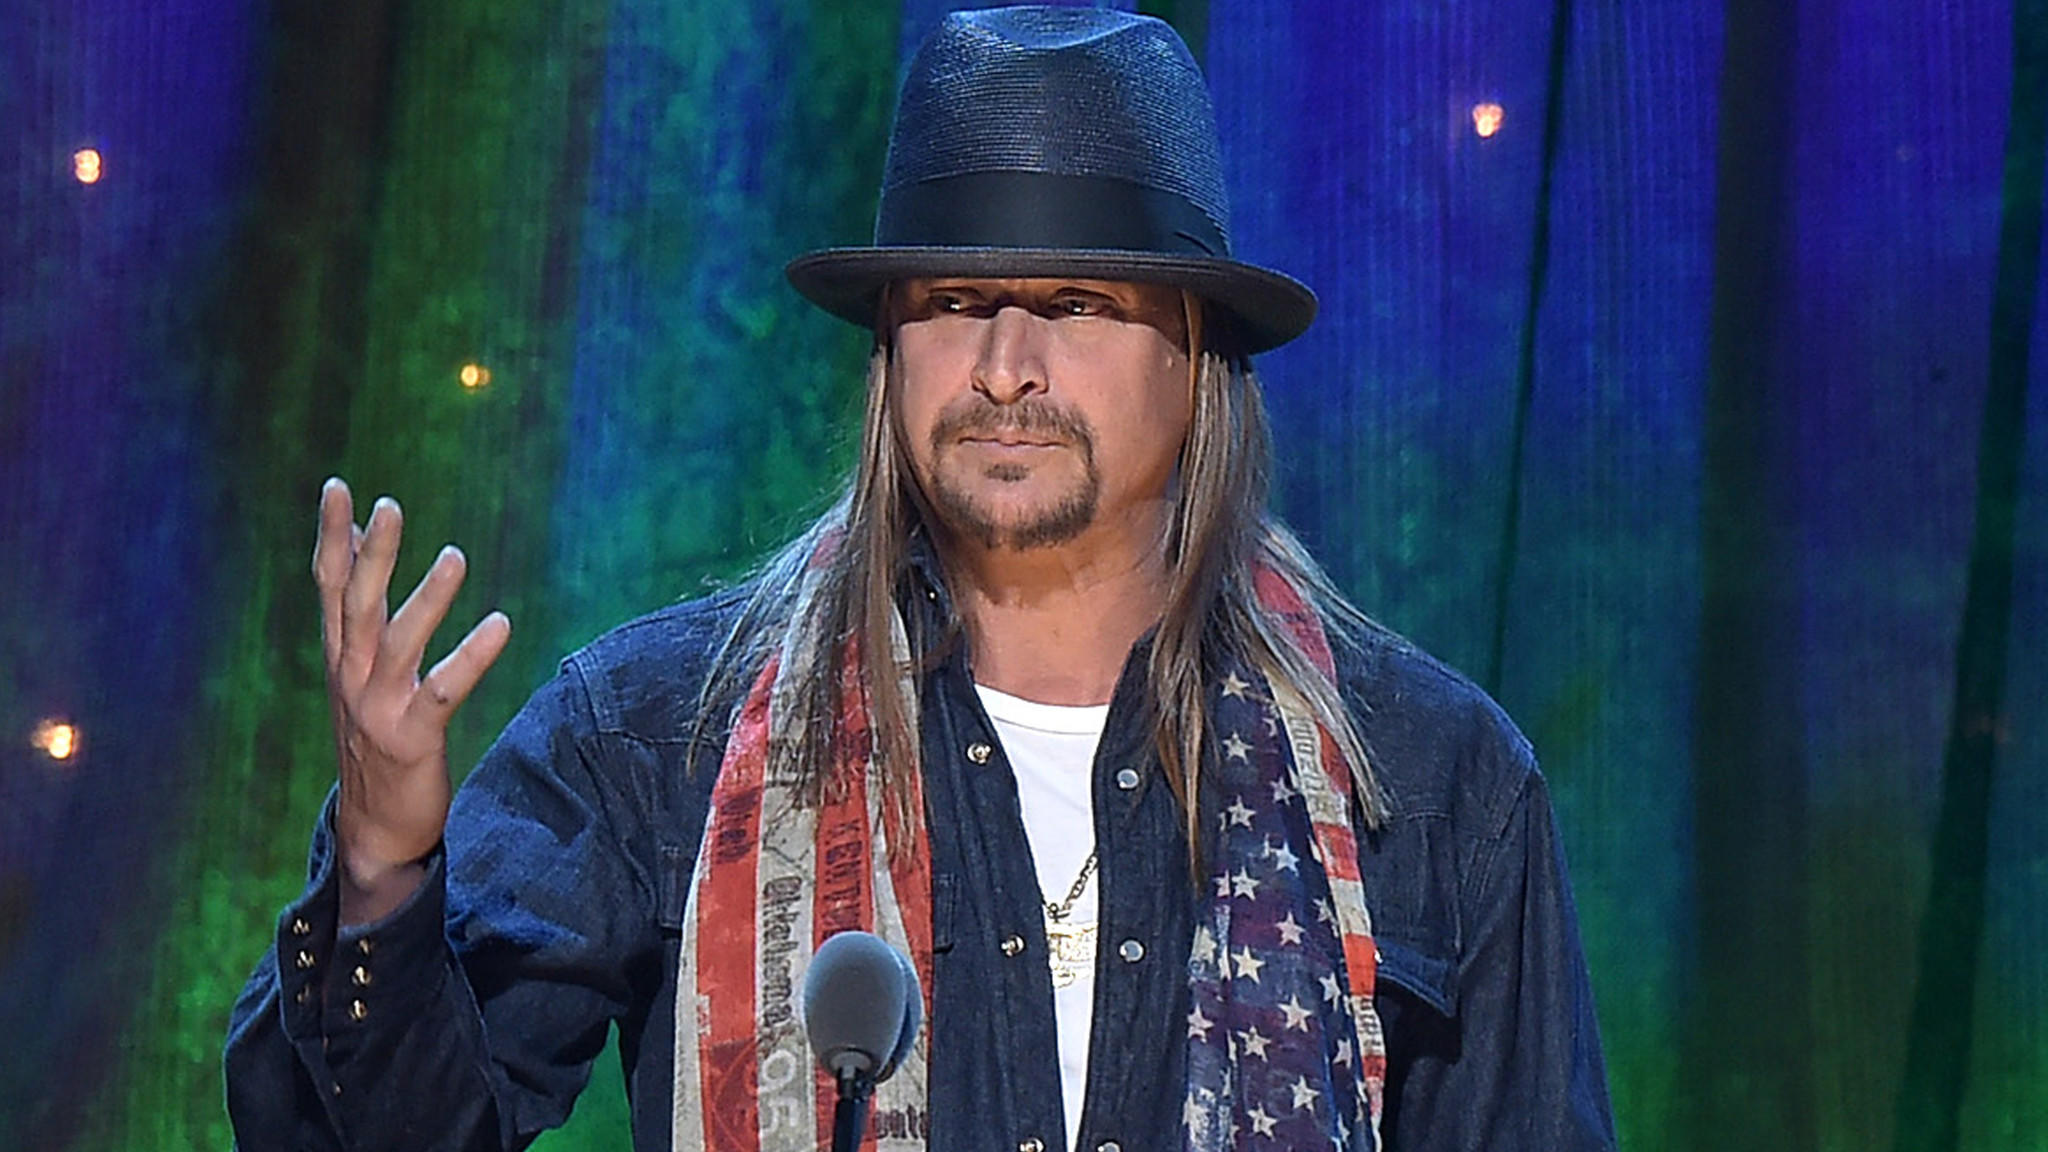 Is this Kid Rock for Senate or Alexander Hamilton?